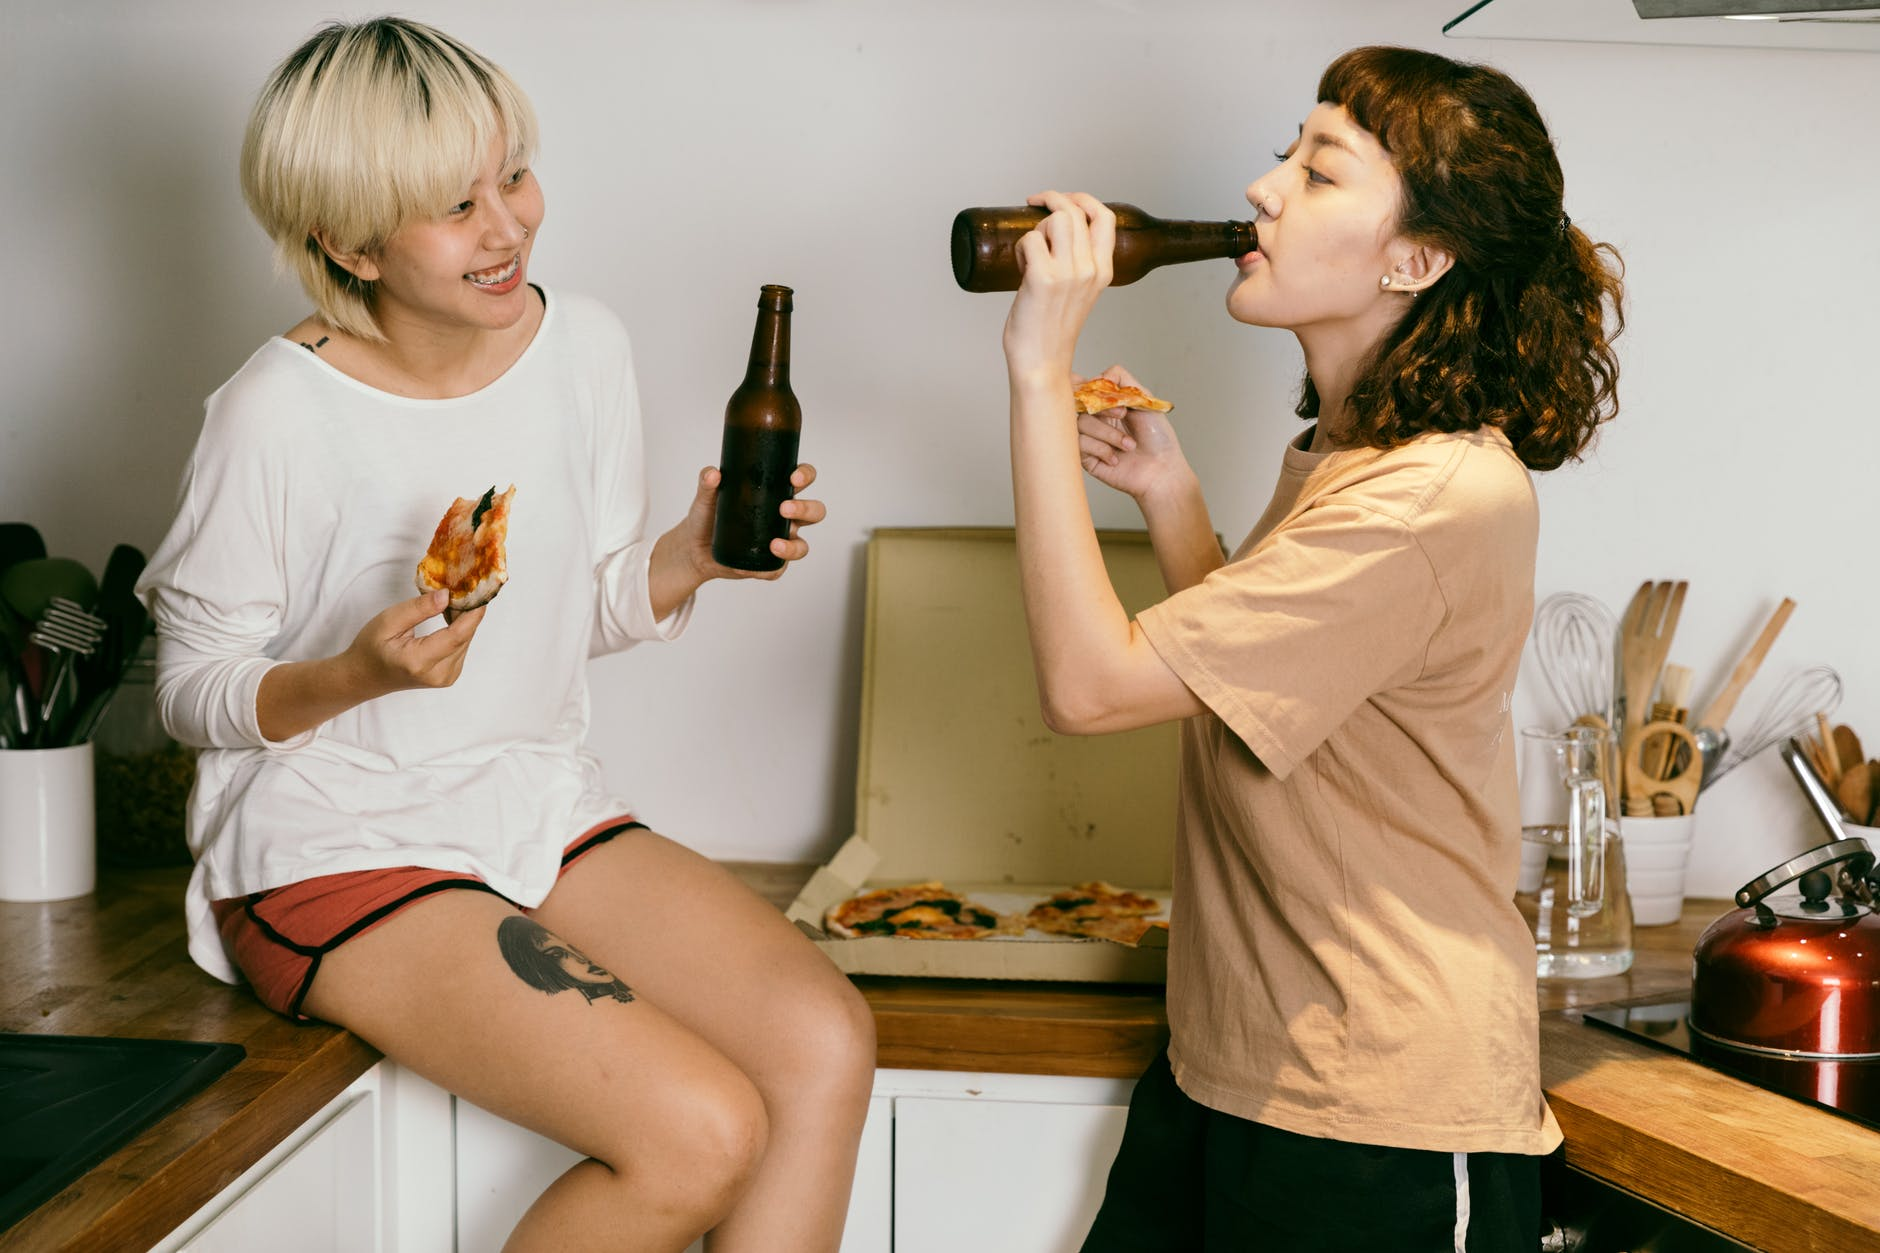 girlfriends eating pizza and drinking beer in kitchen at home